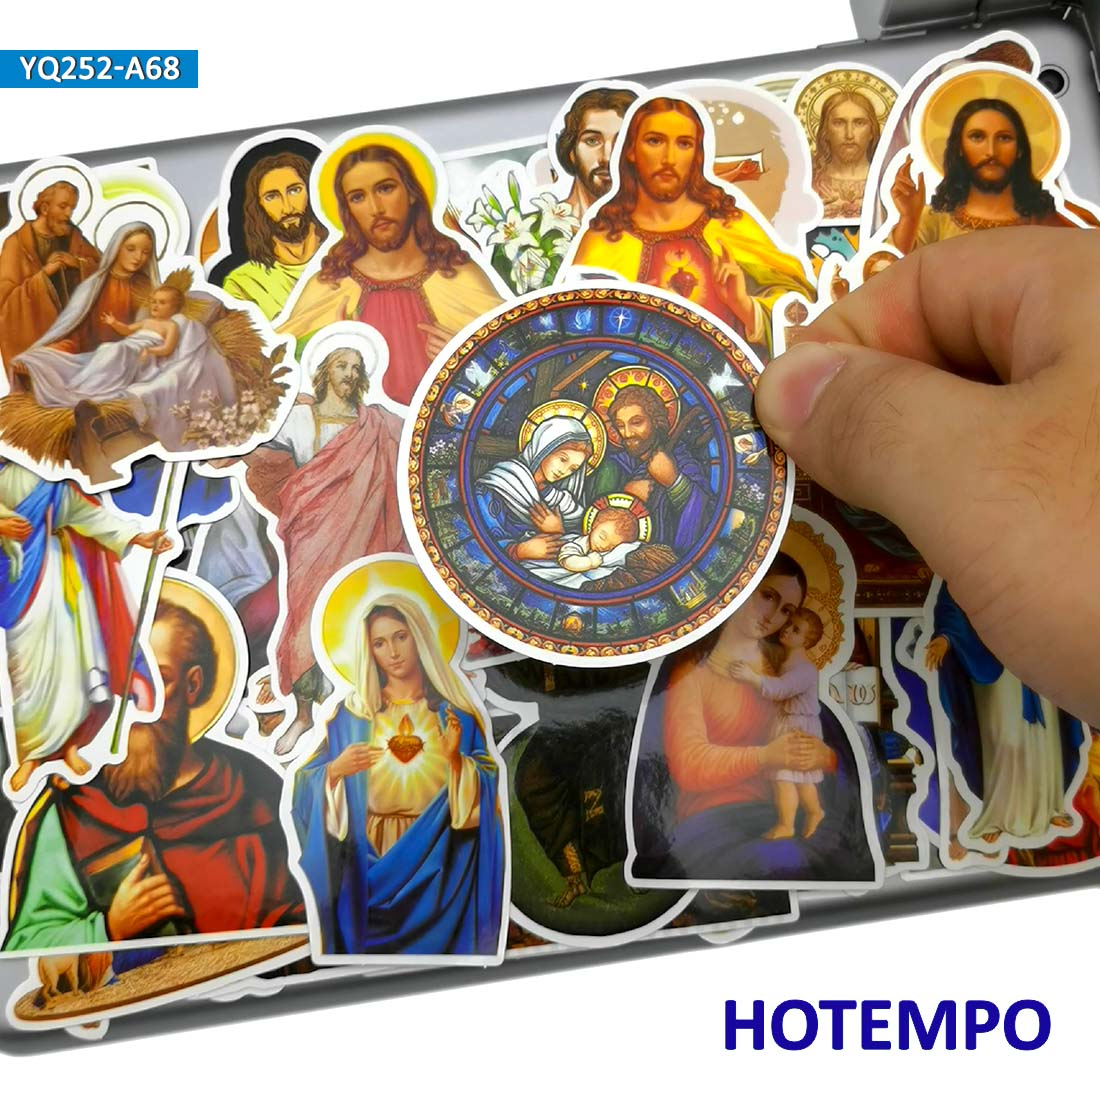 68pcs Jesus Virgin Mary Peter Paul Stickers For DIY Mobile Phone Laptop Luggage Guitar Case Skateboard Bike PVC Waterproof Decal